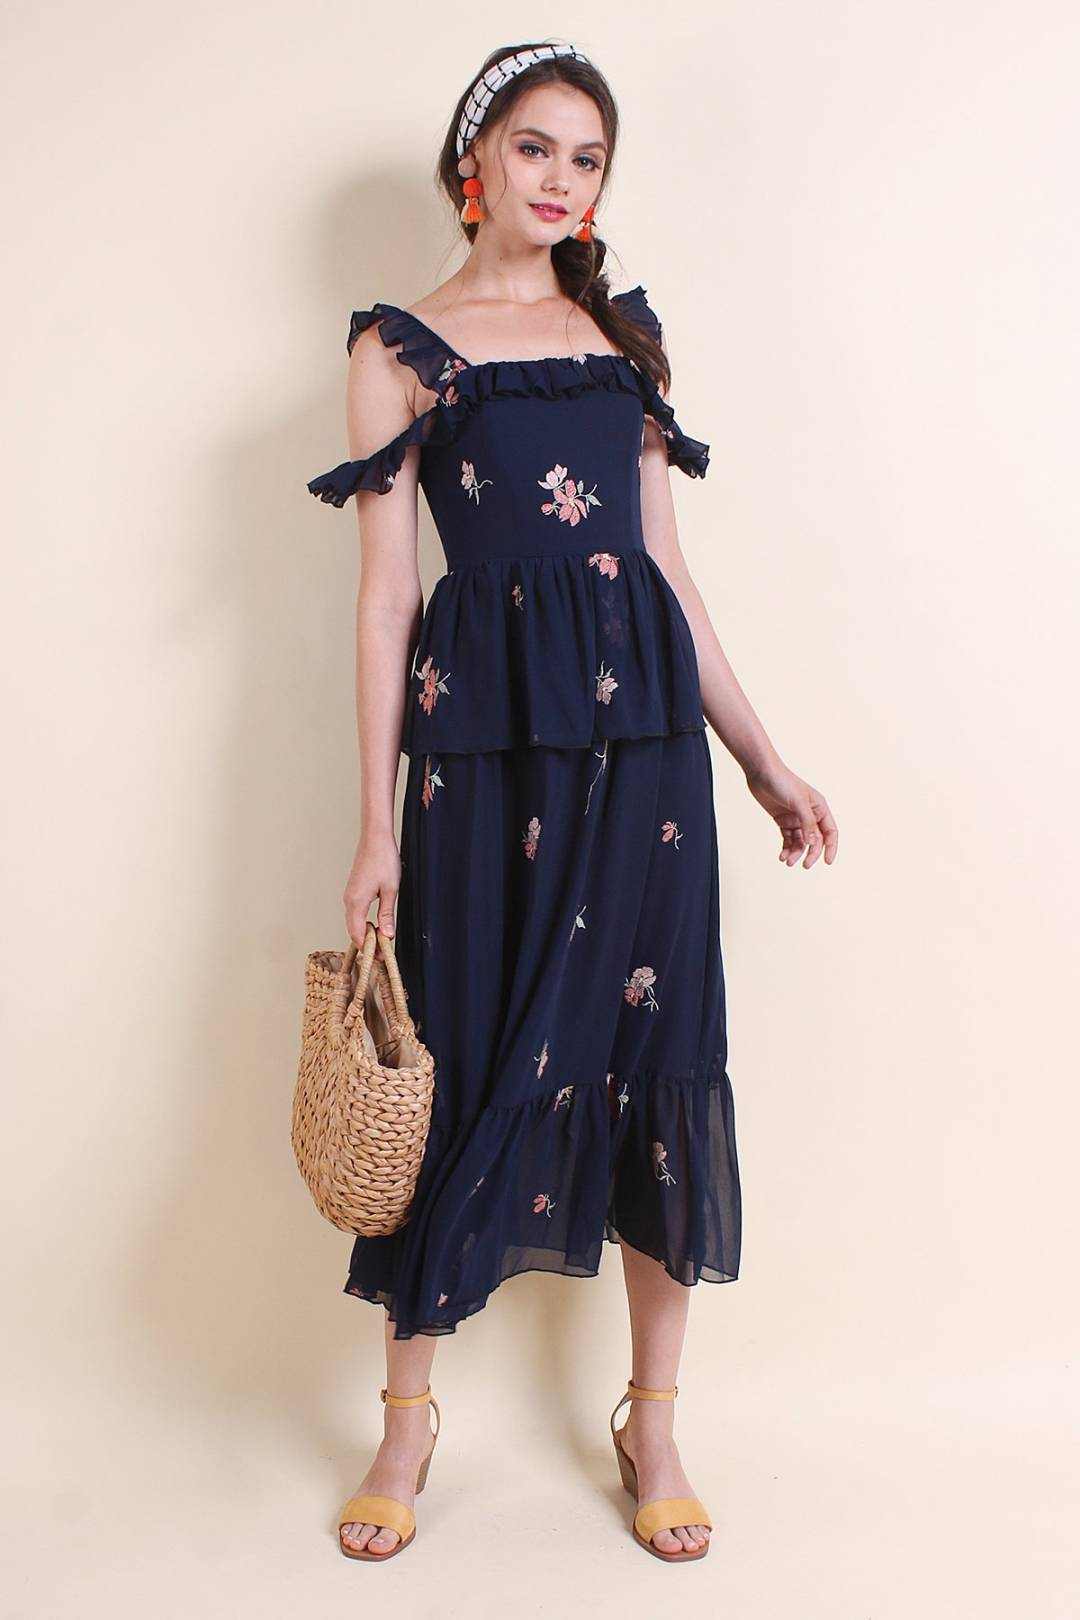 MADEBYNM ARIZONA RUFFLES TIER MAXI DRESS IN NAVY BLUE [XS/S/M/L]